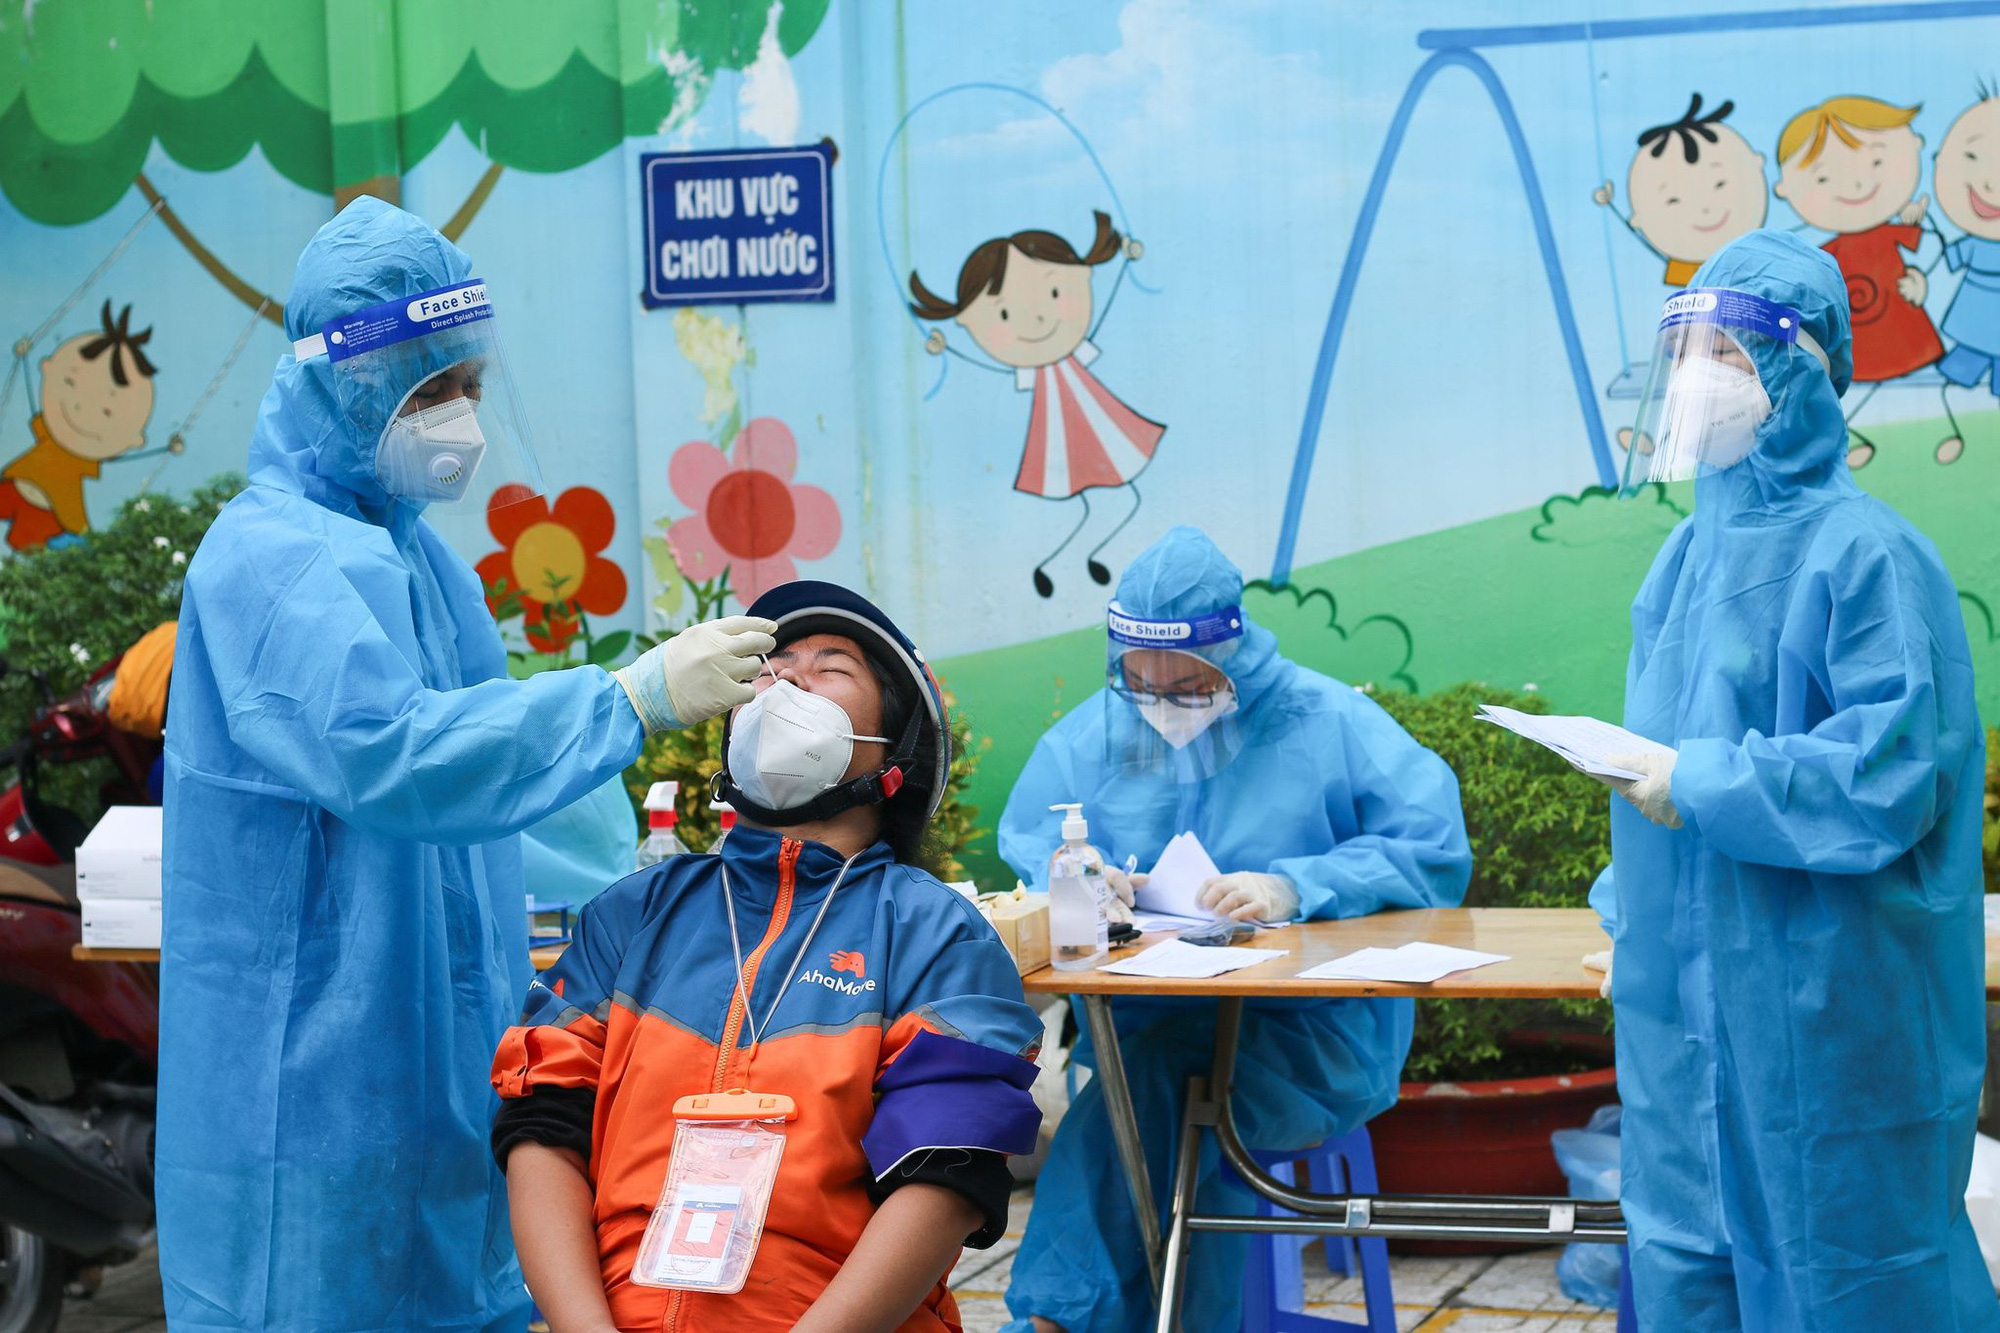 A medical worker takes a nasal swab from a delivery worker for COVID-19 testing on Nguyen Van Luong Street in Go Vap District, Ho Chi Minh City, September 20, 2021. Photo: Chau Tuan / Tuoi Tre